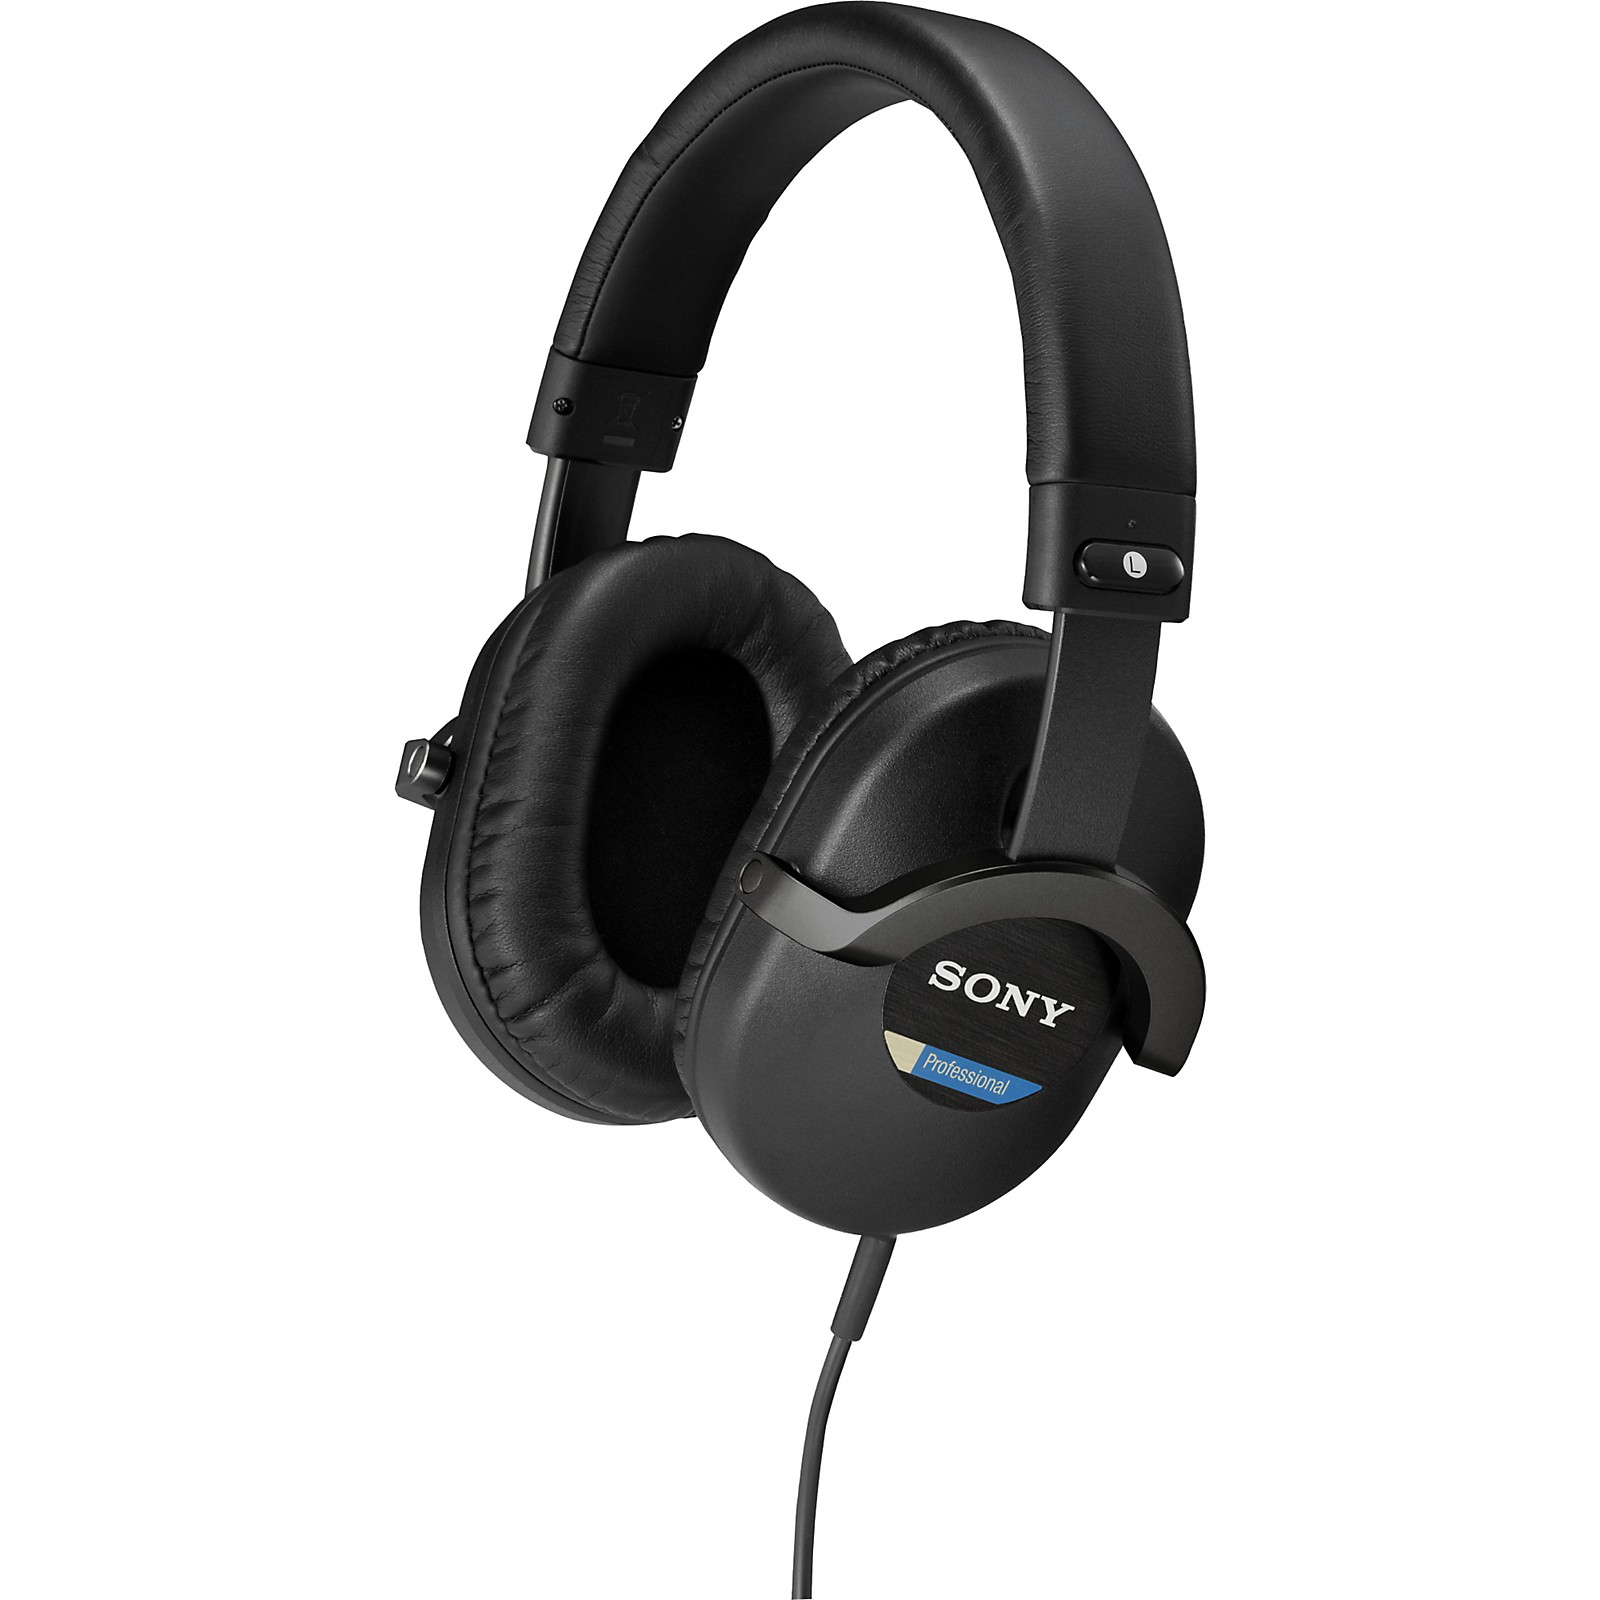 Sony MDR-7510 Professional Headphone